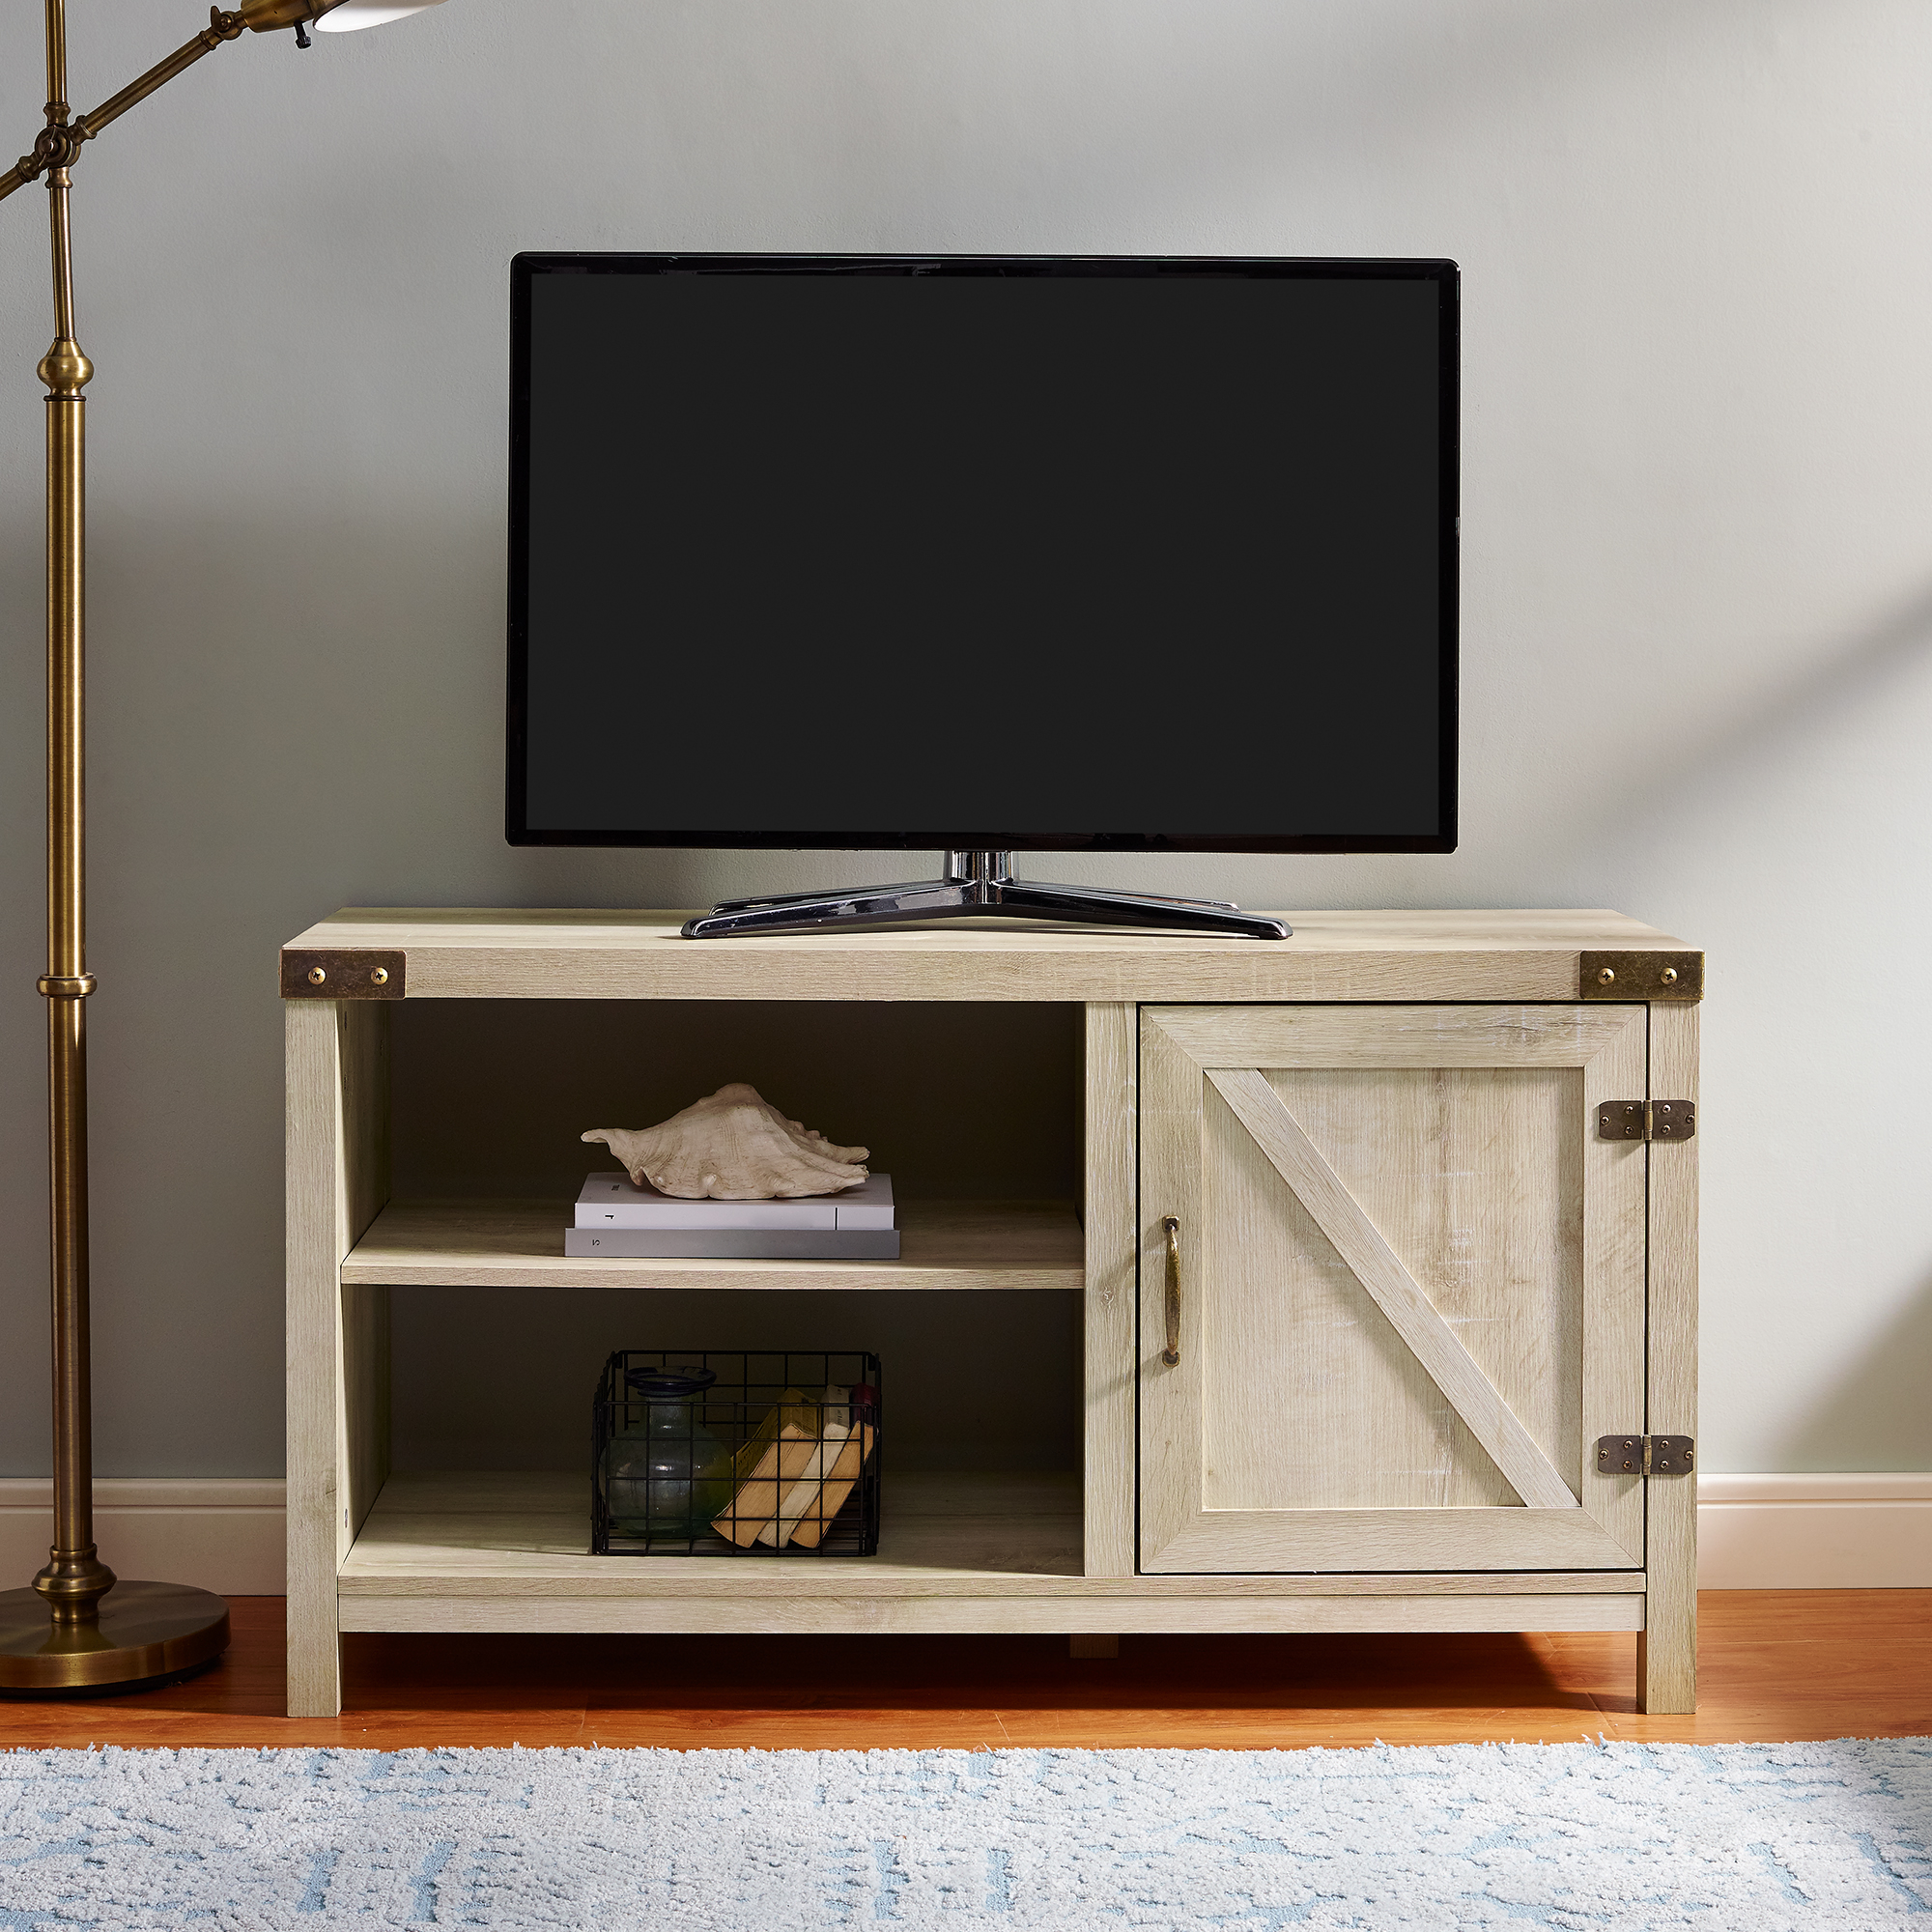 """Mclelland Tv Stands For Tvs Up To 50"""" For Well Liked Woven Paths Farmhouse Barn Door Tv Stand For Tvs Up To  (View 1 of 25)"""